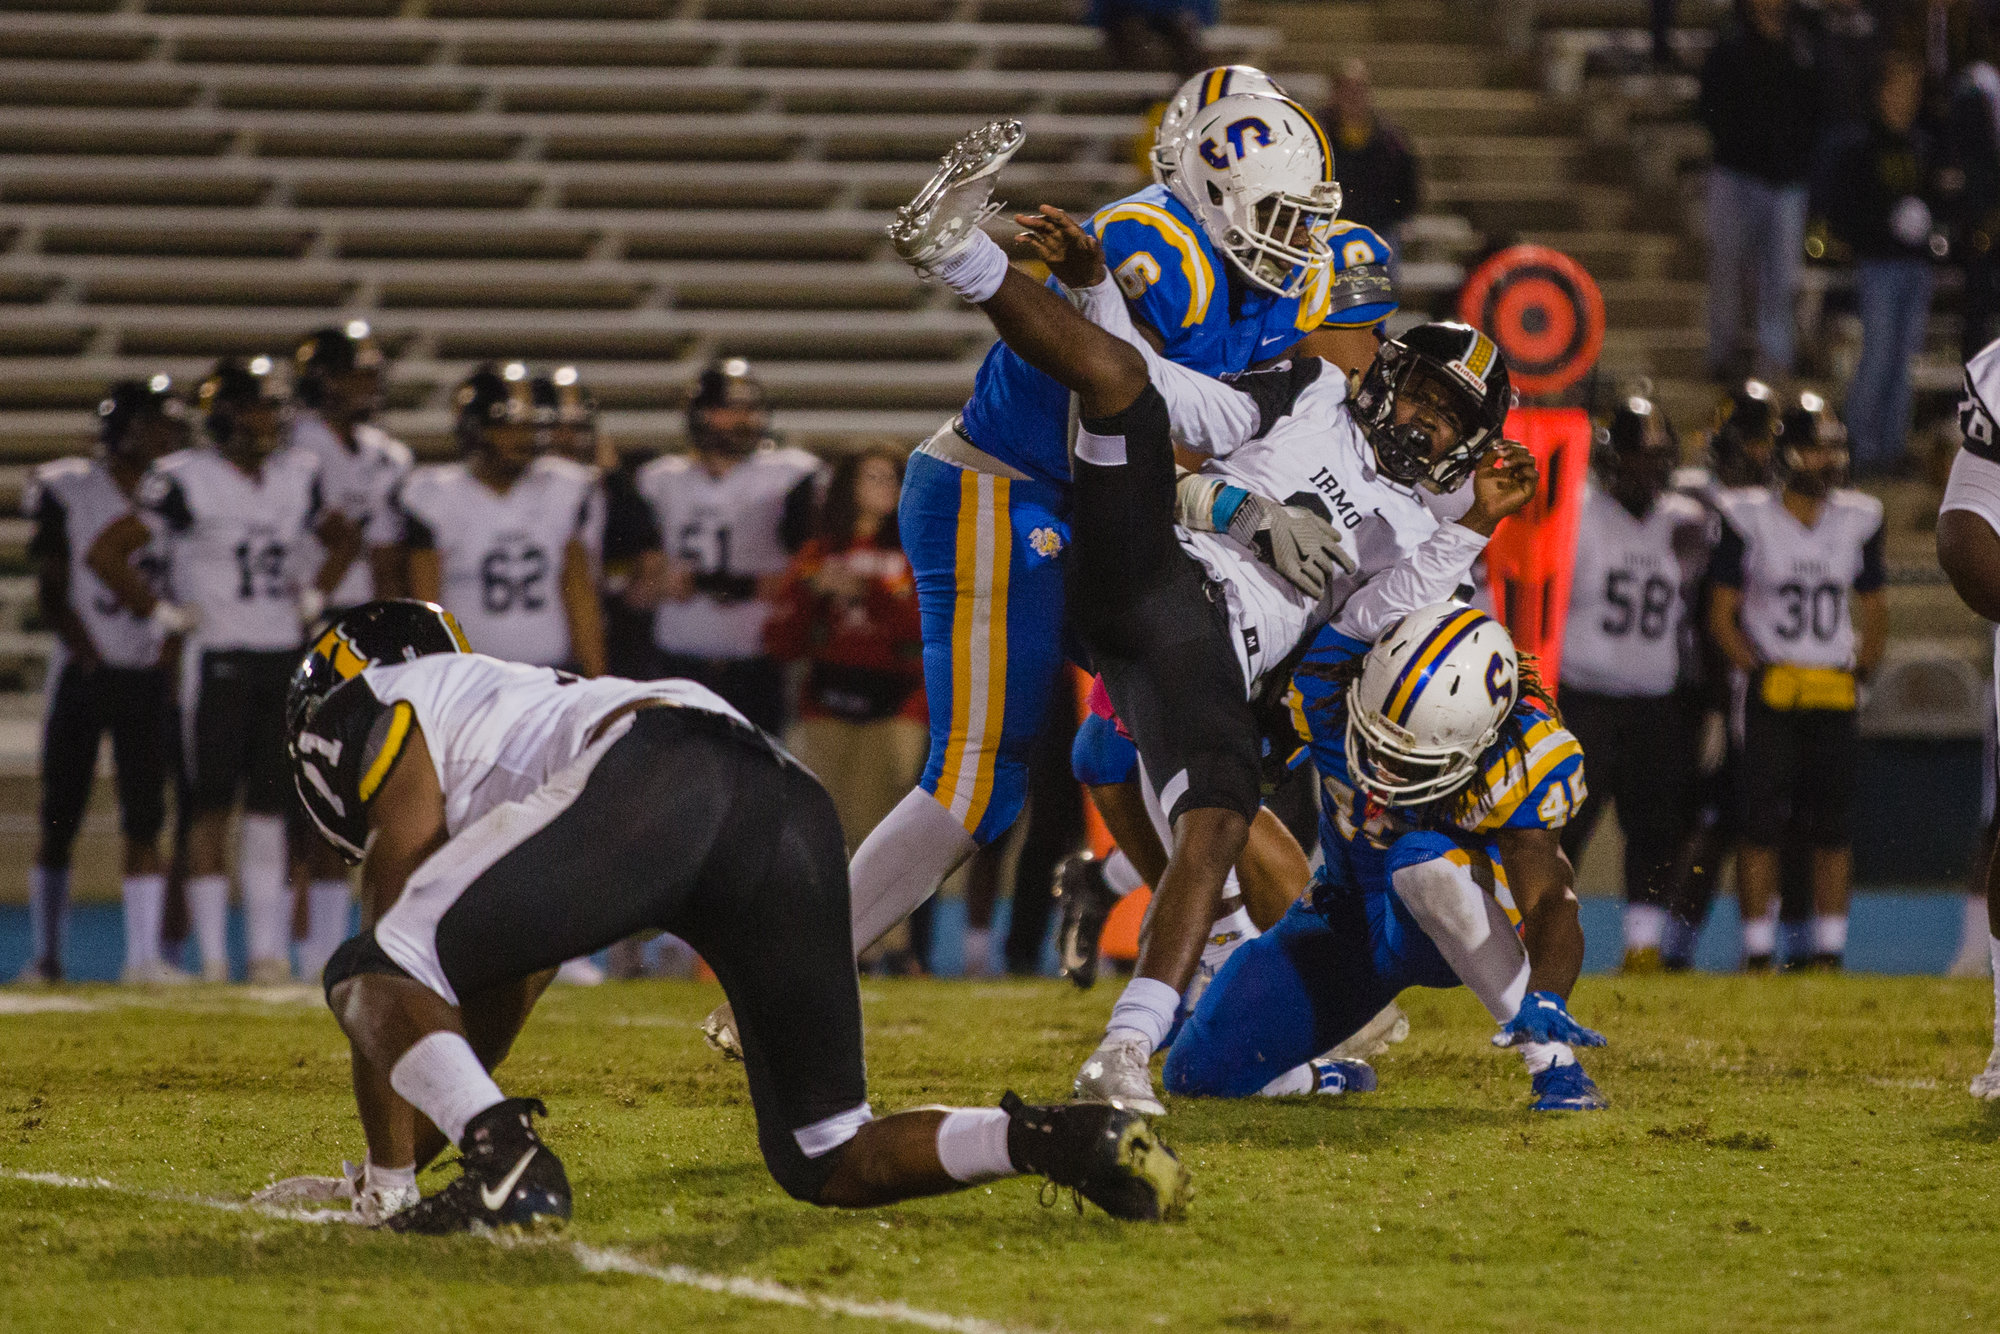 Sumter defensive end Justus Boone (6) and linebacker Kirkland Boone (45) hit an Irmo player on Friday night.